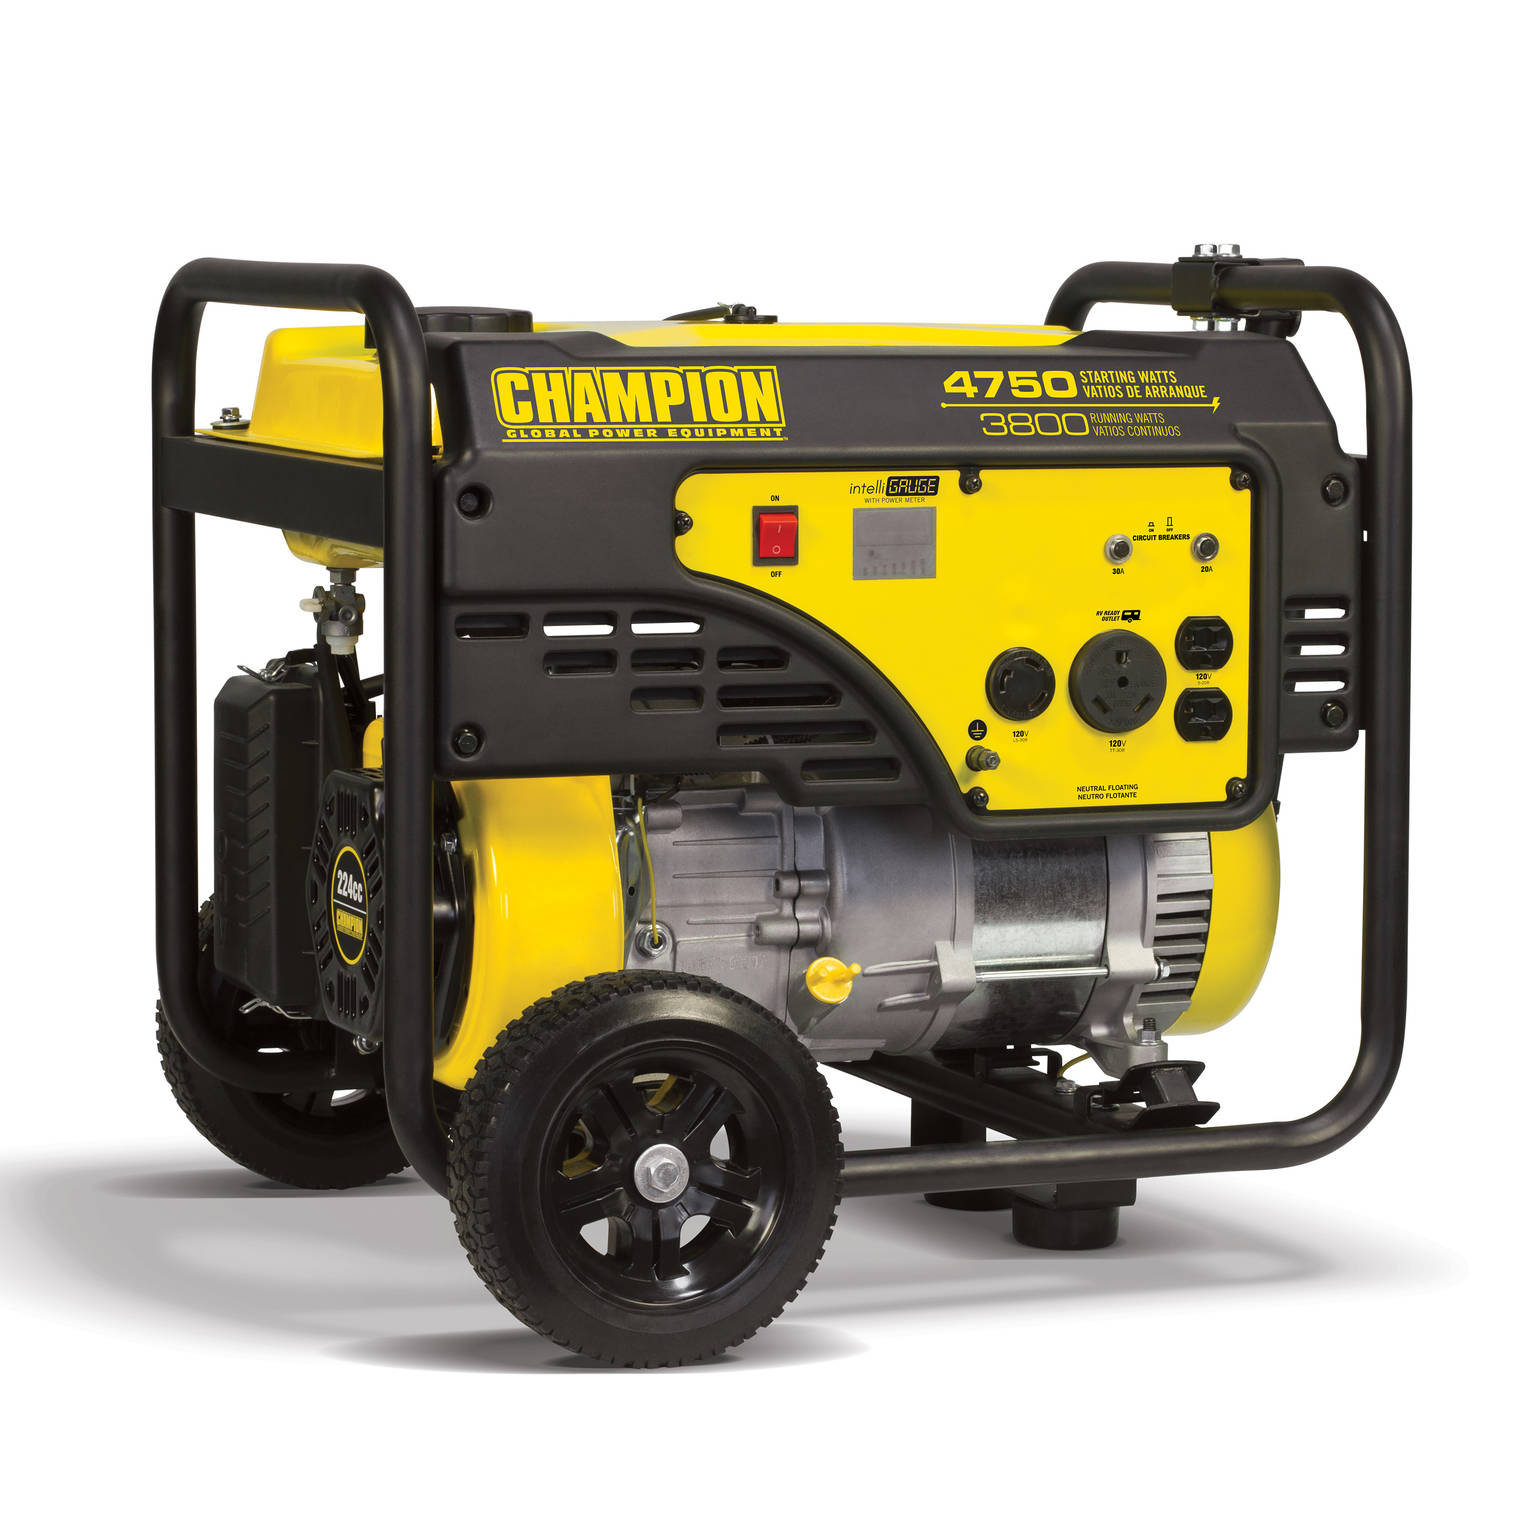 Champion 100103 3800-Watt RV Ready Portable Generator with Wheel Kit